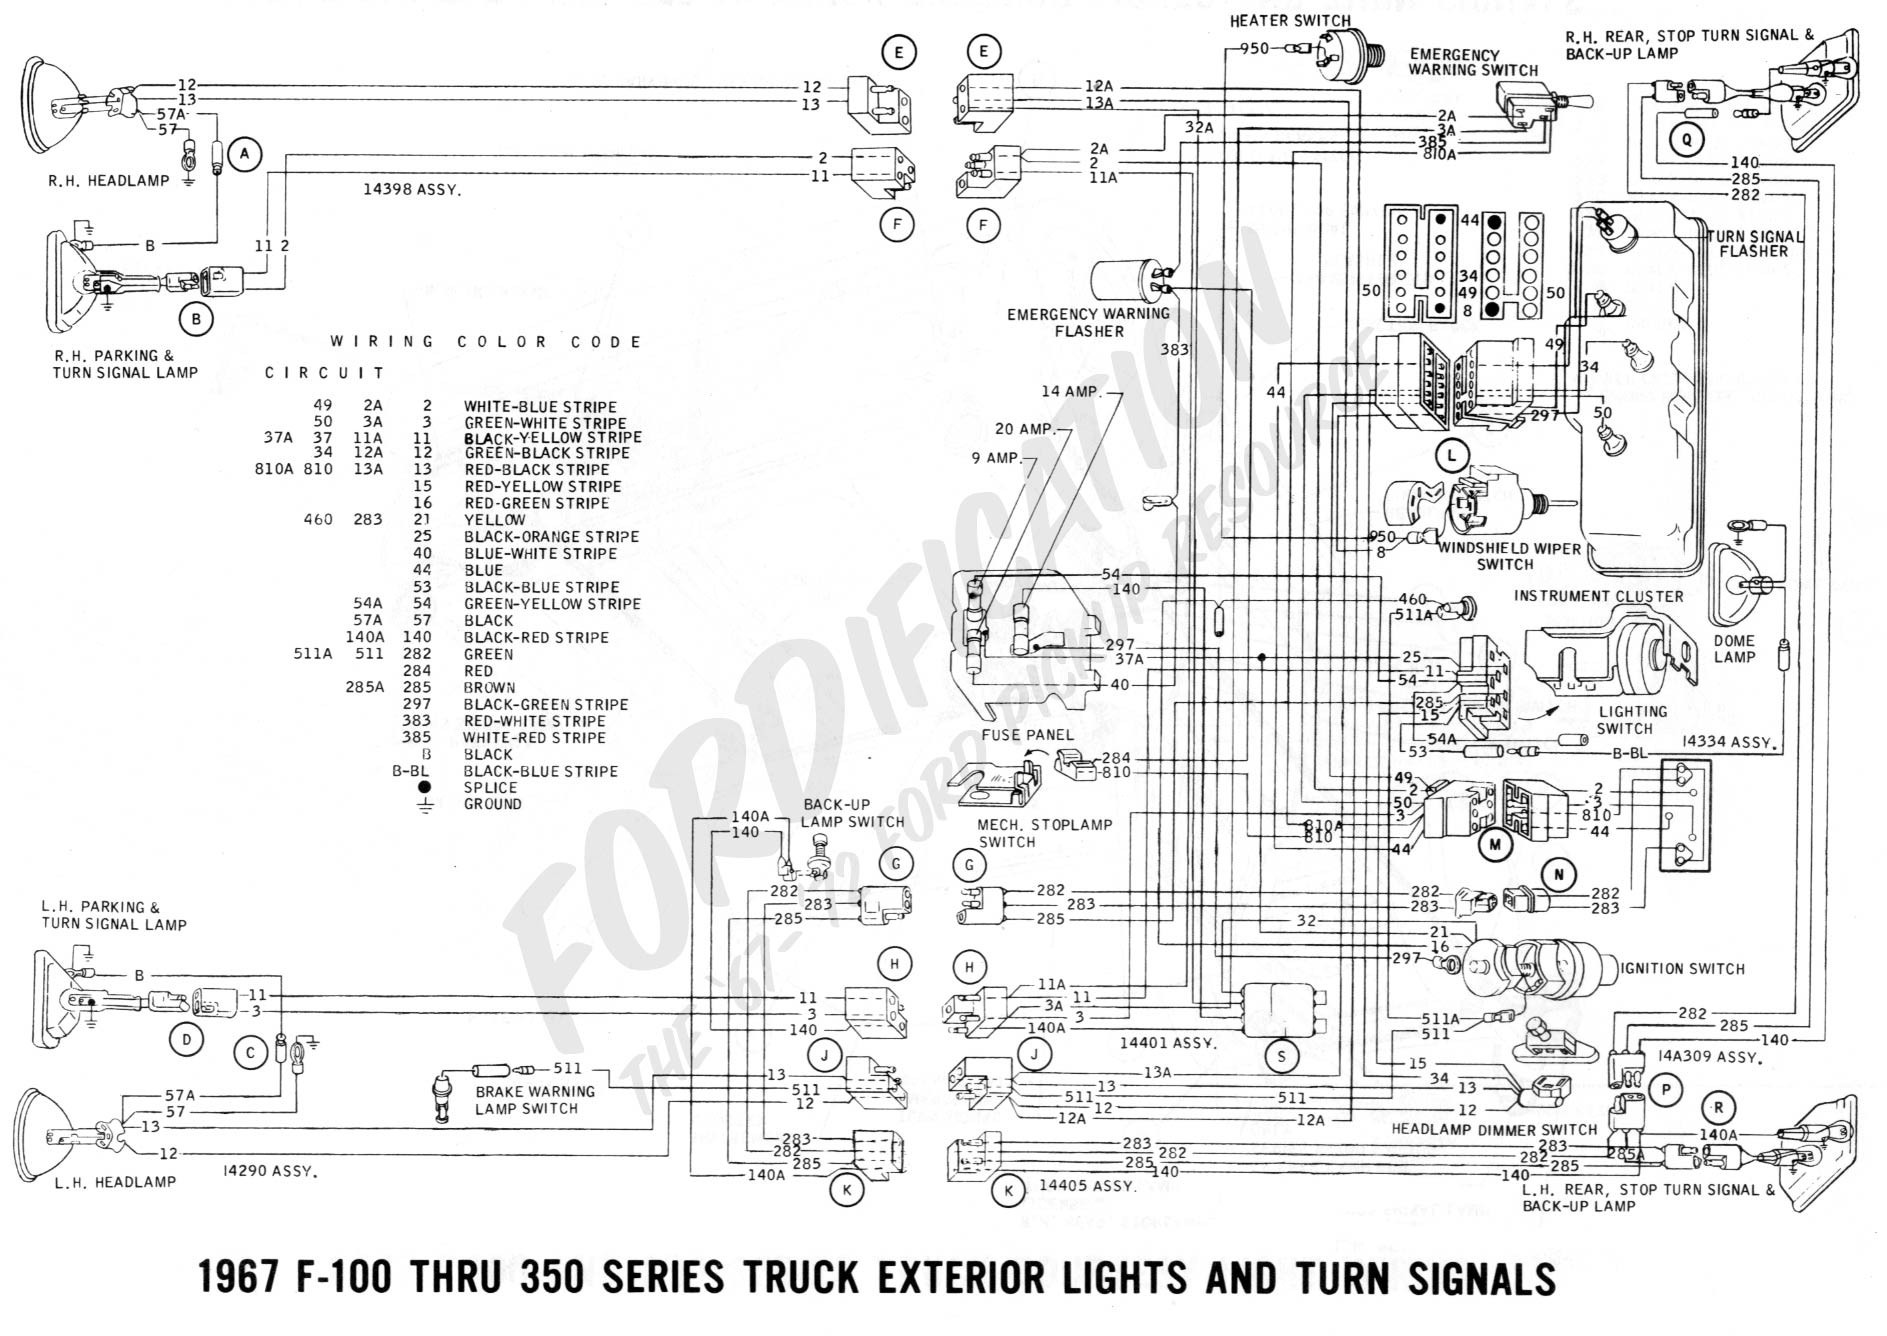 Turn Signal Wiring Diagram Chevy Truck Turn Signal Wiring Diagram ford Truck Technical Drawings and